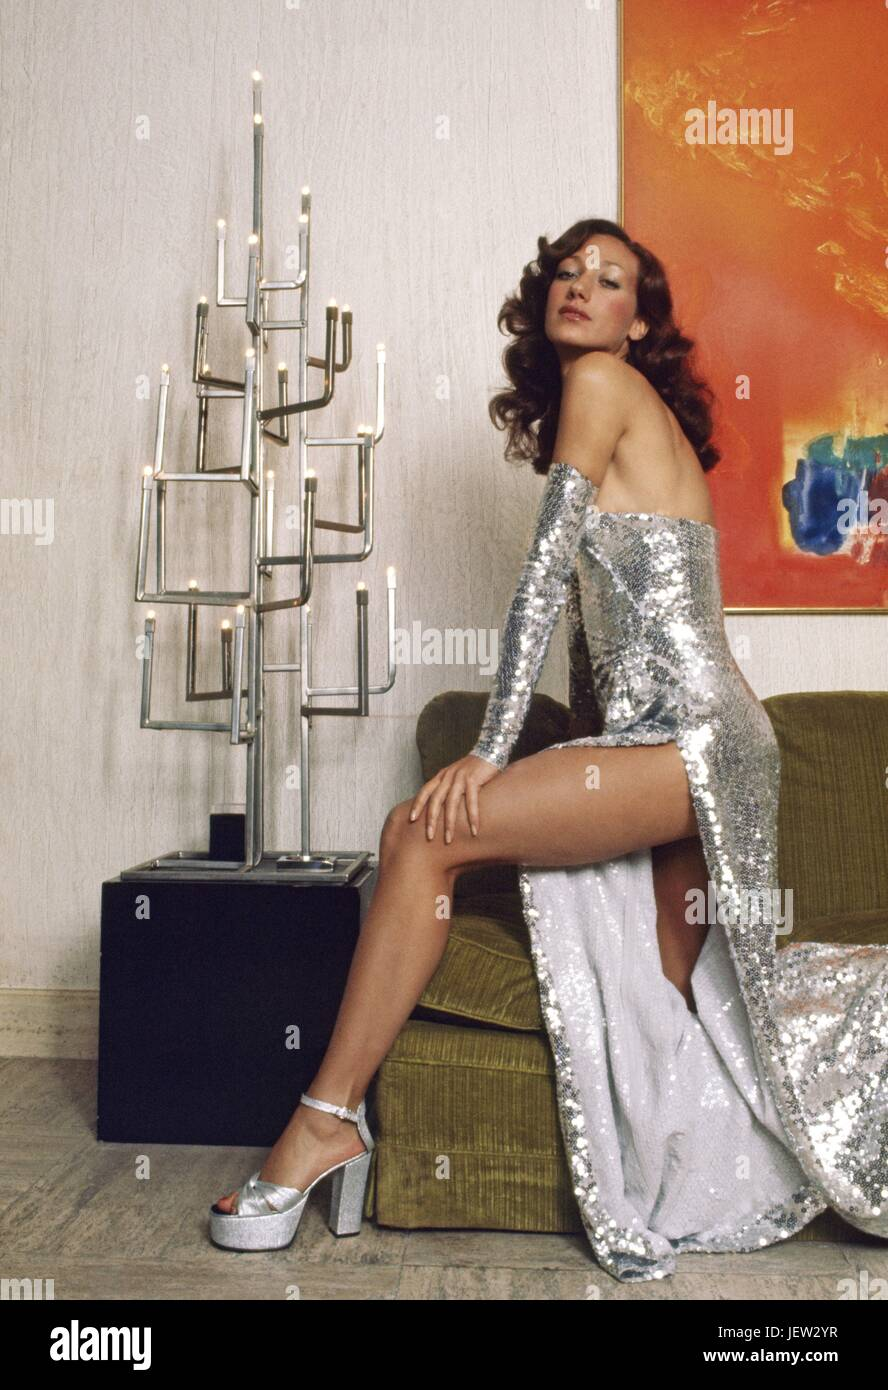 Discussion on this topic: Katherine Kelly (actress), marisa-berenson/